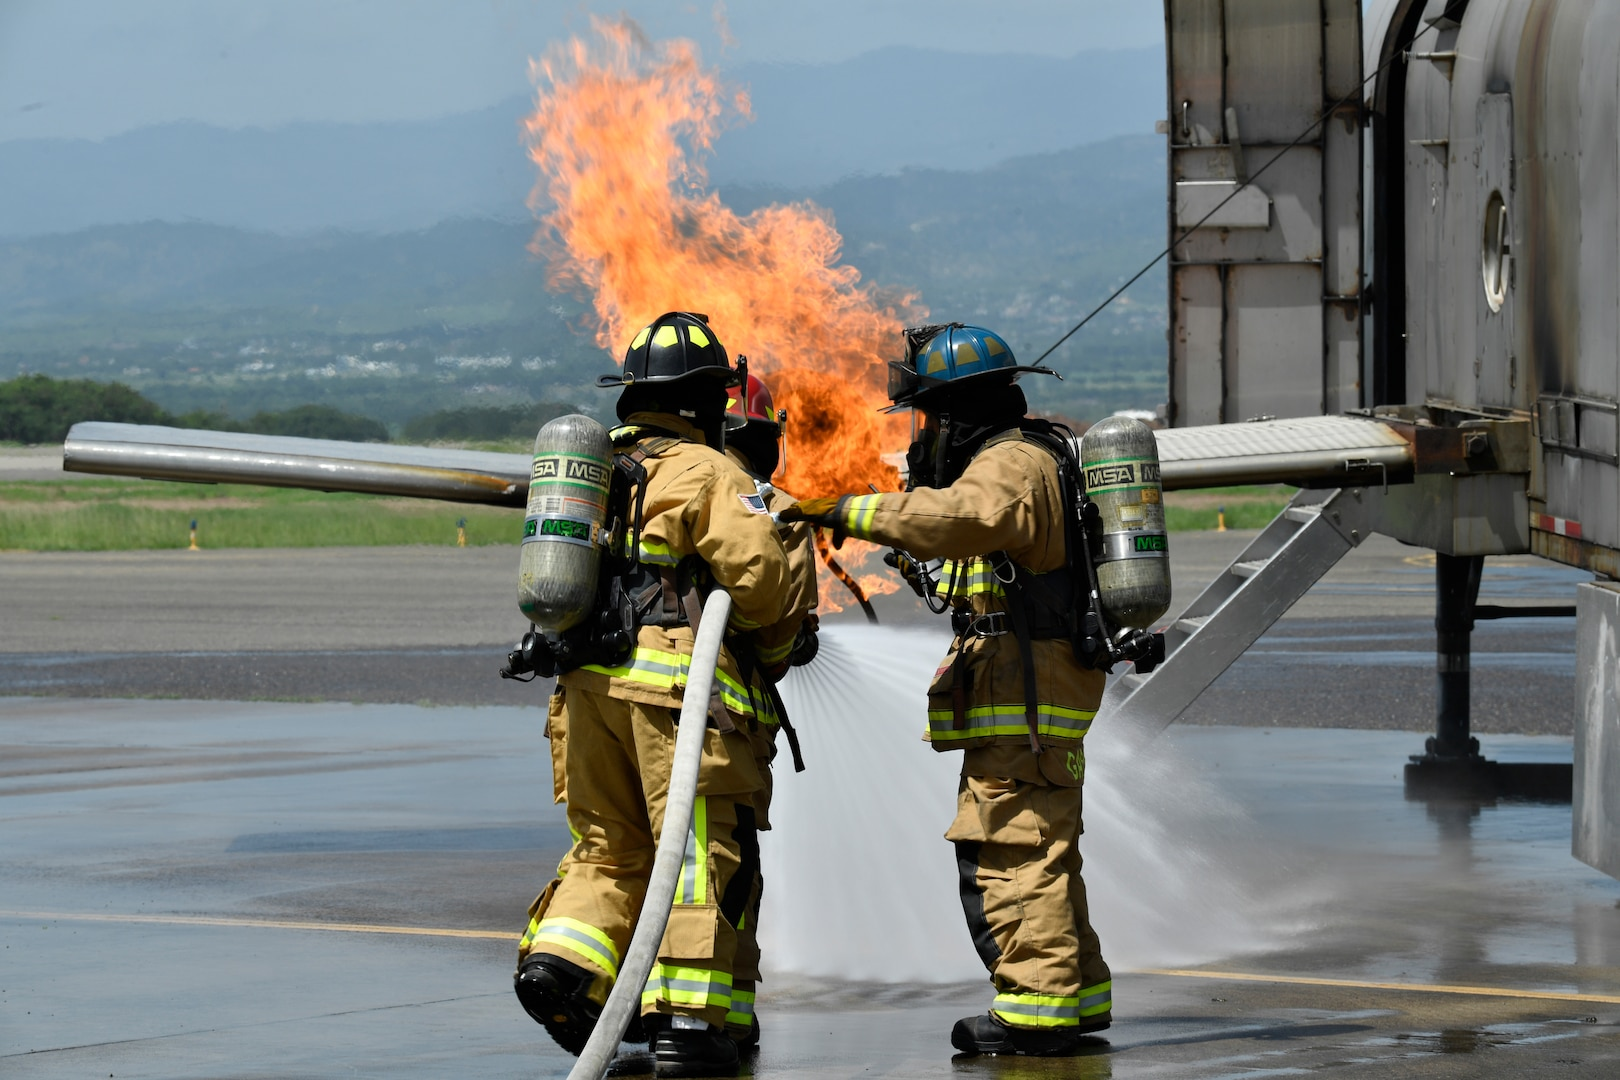 U.S., Central American firefighters train for fire emergencies together